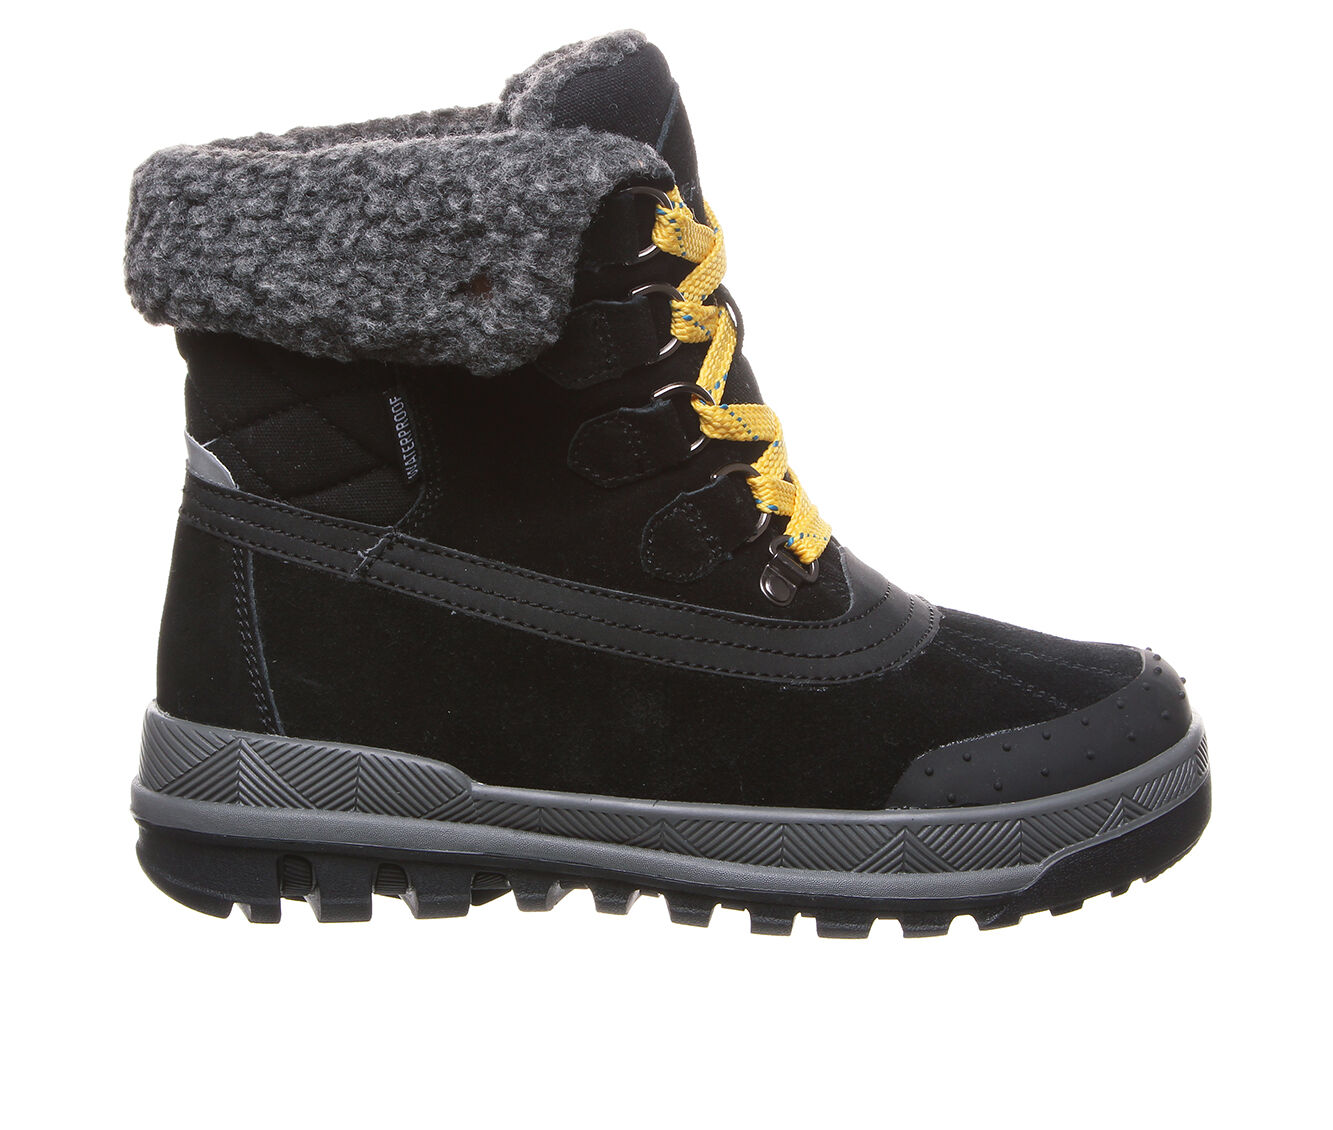 Women's Bearpaw Inka Winter Boots Black